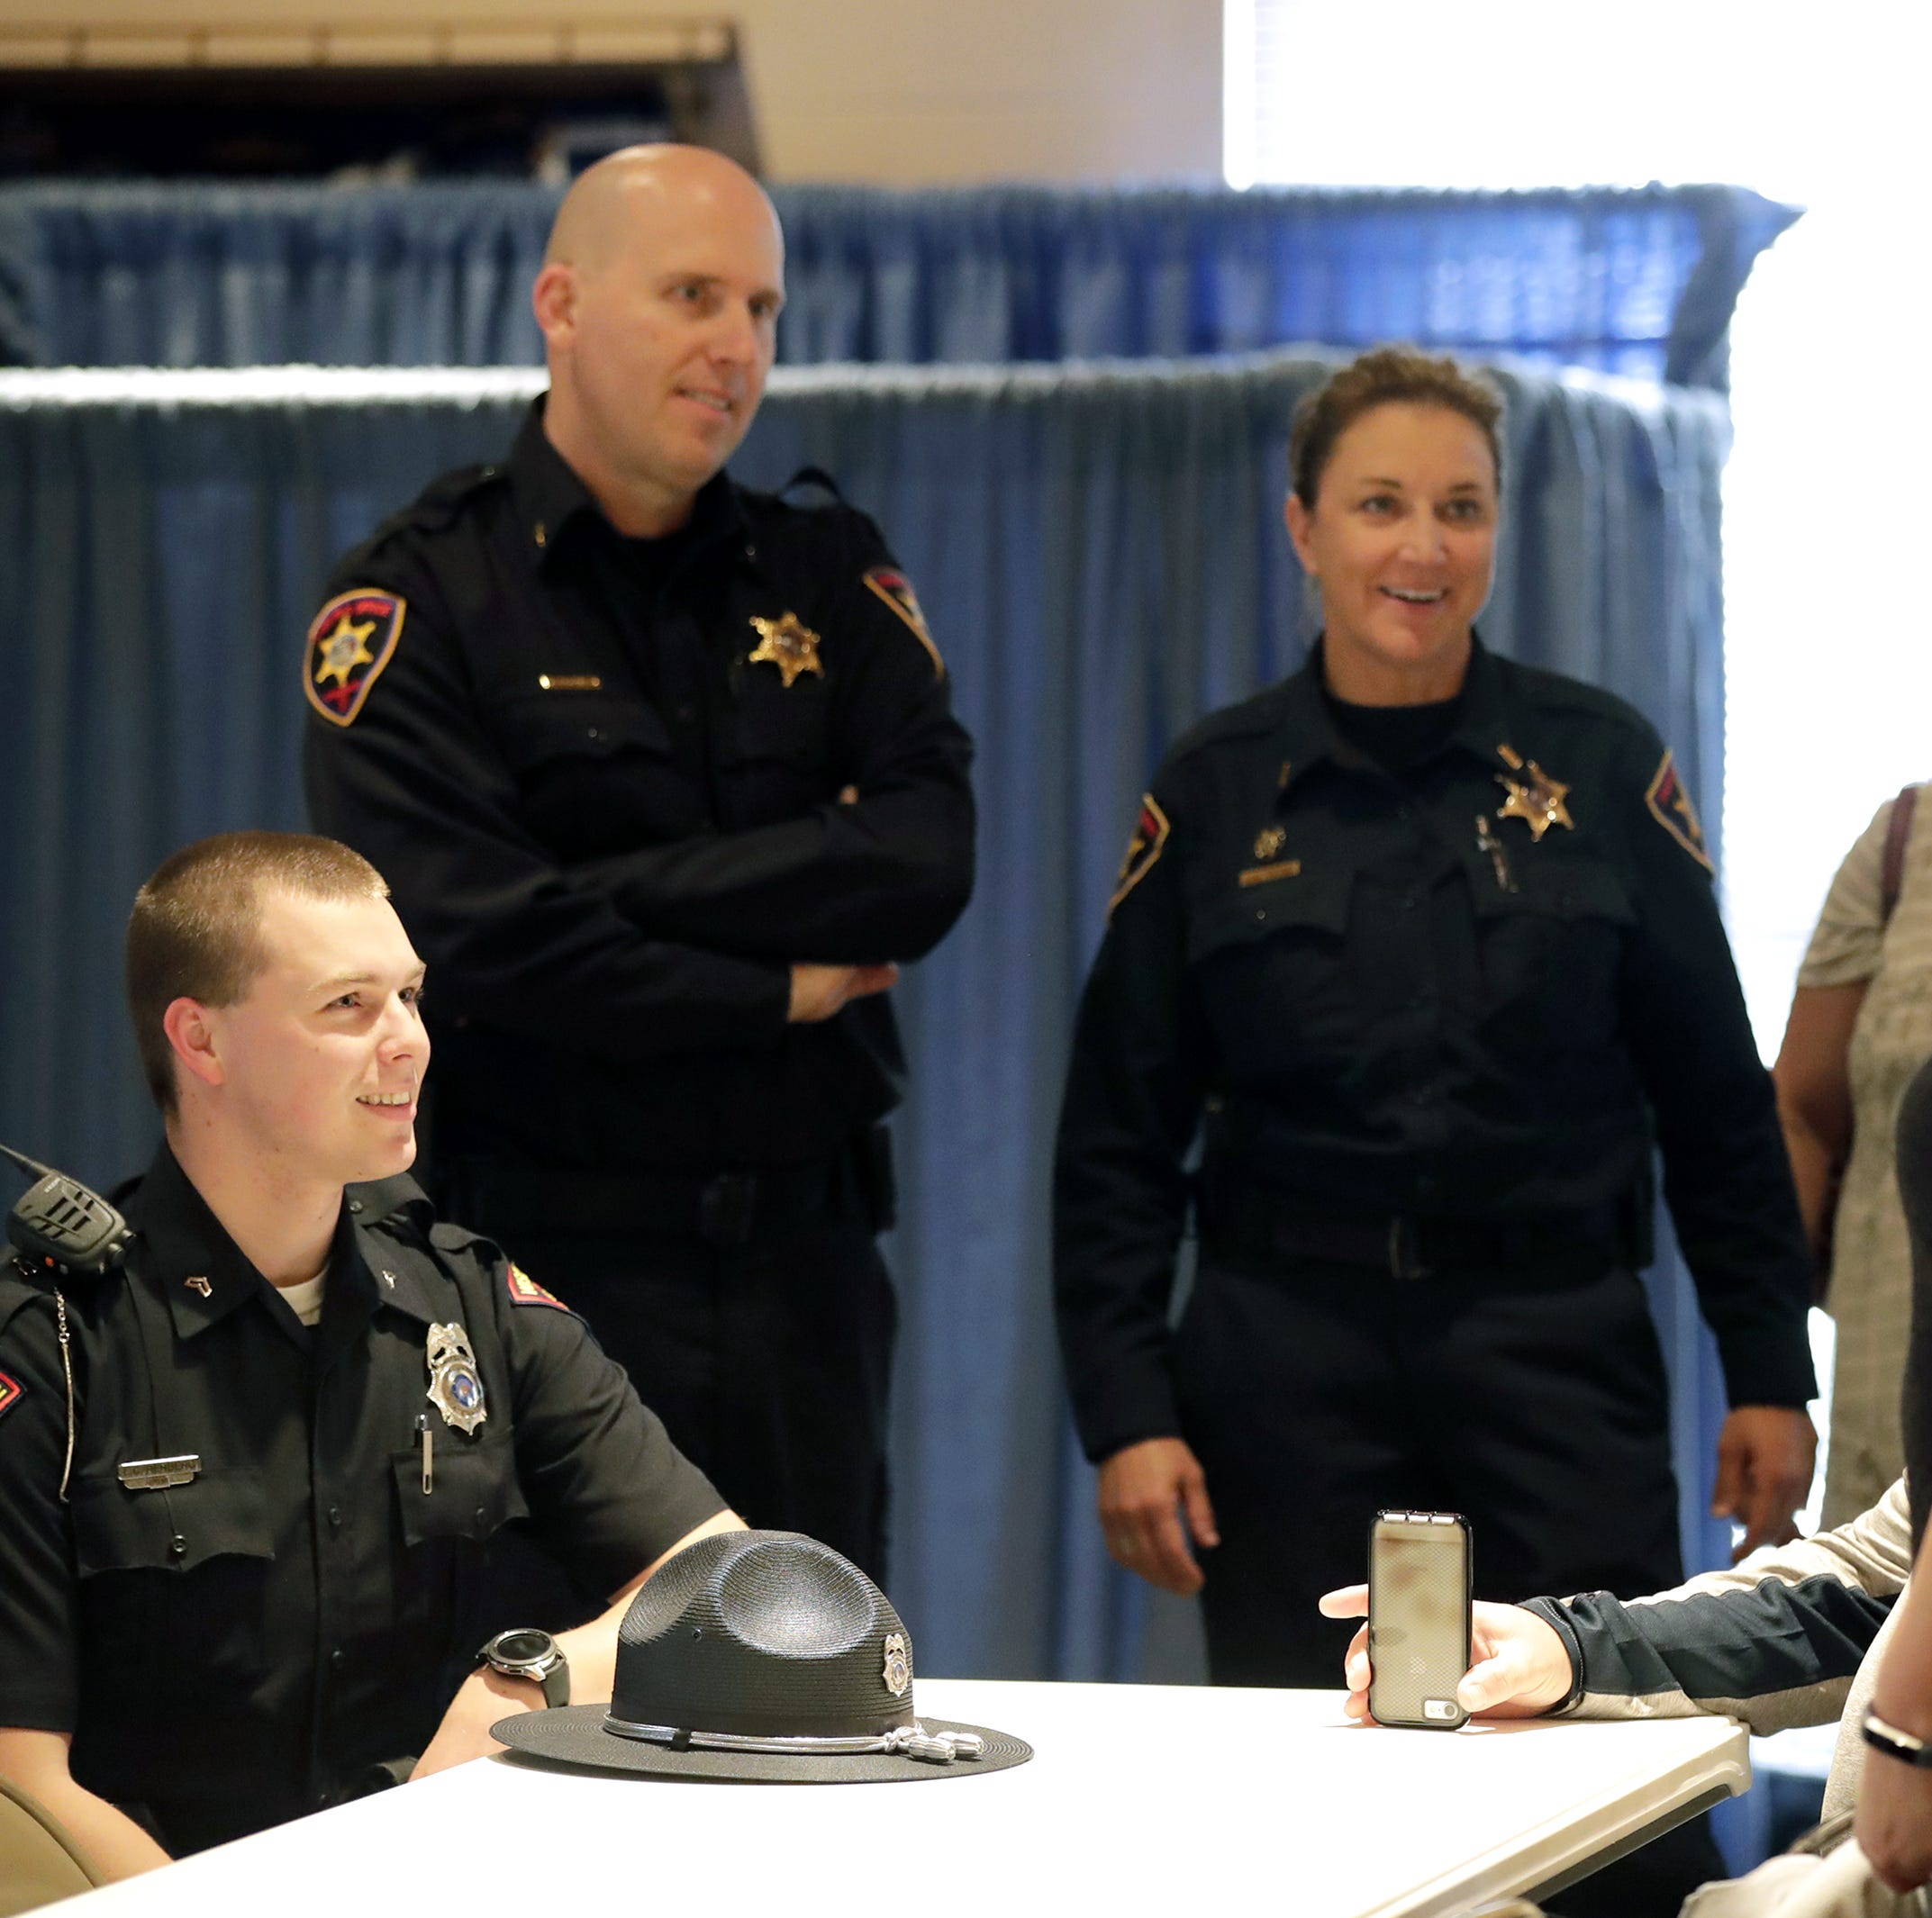 I-41 pileup: Emergency responders honored for efforts in 131-car pileup in Neenah